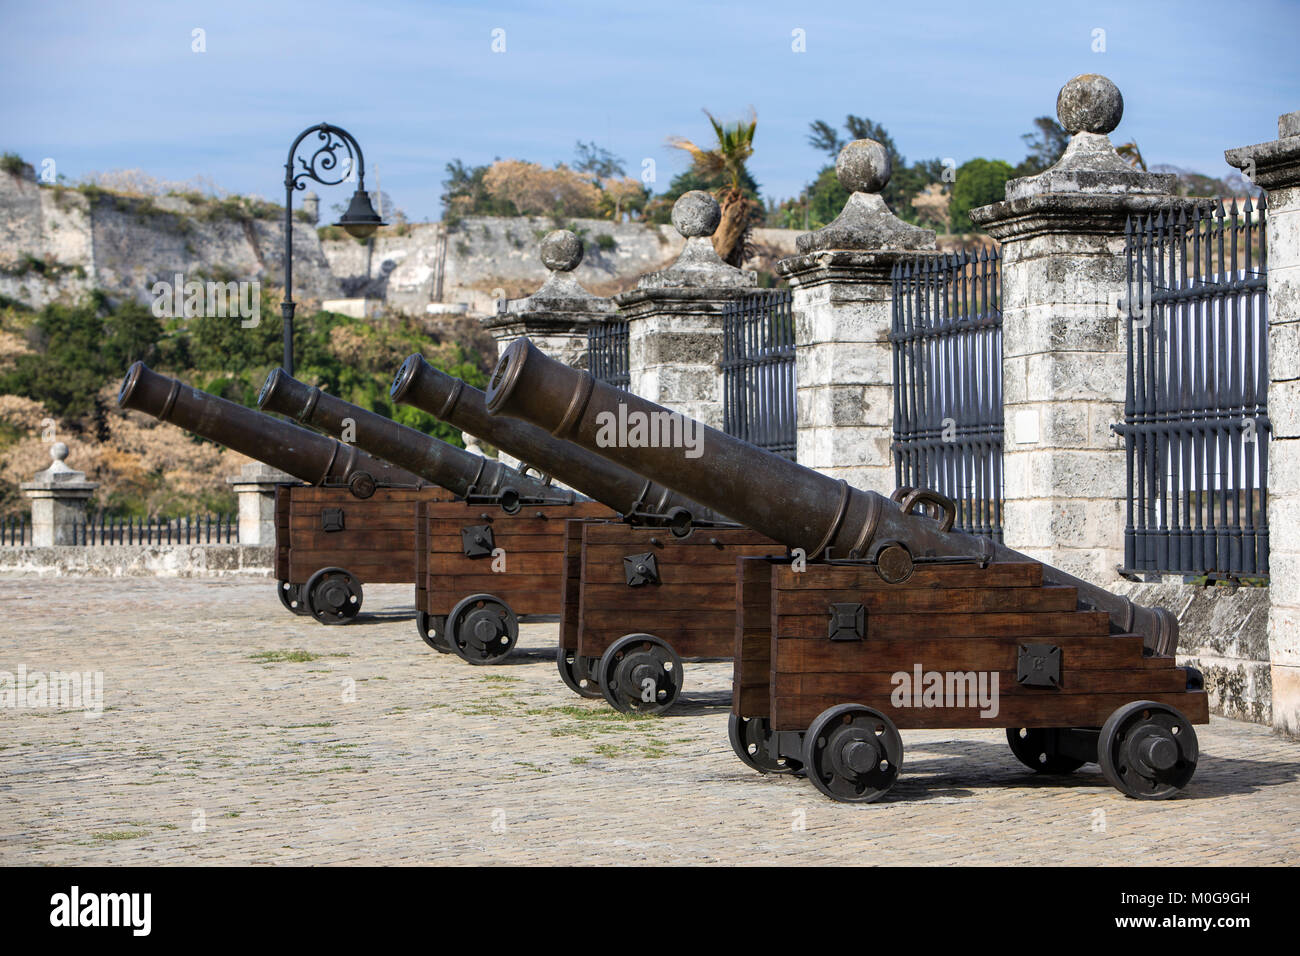 Cannons at the Castle of the Royal Force in Havana, Cuba Stock Photo